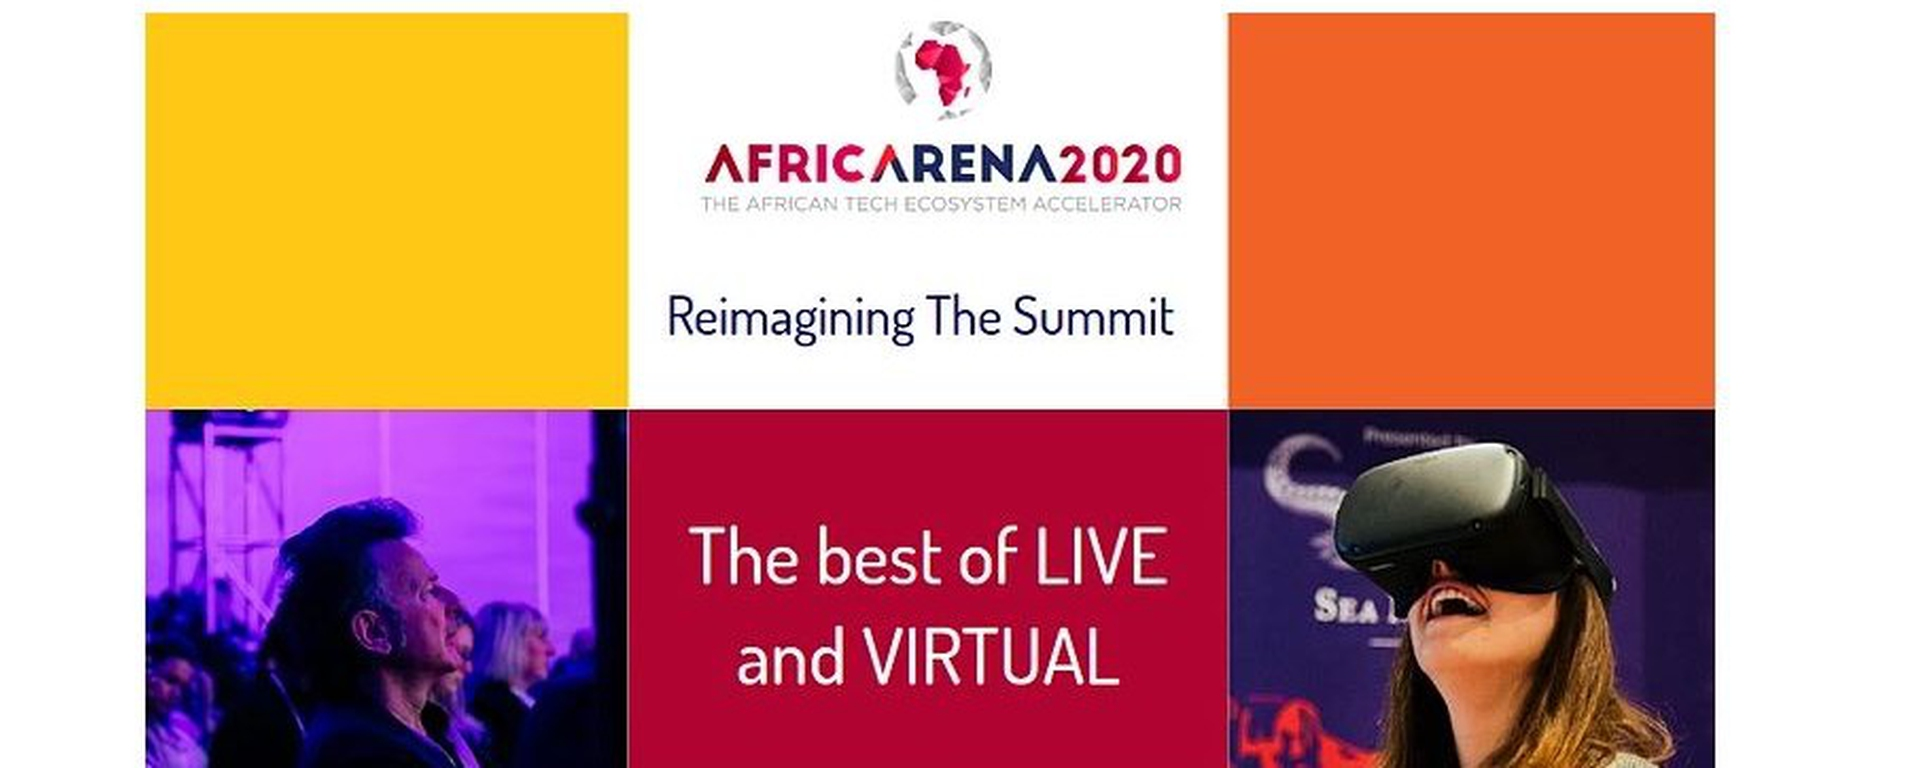 AfricArena - AfricArena Summit: Accelerating Africa's Tech Future Movemeback African event cover image